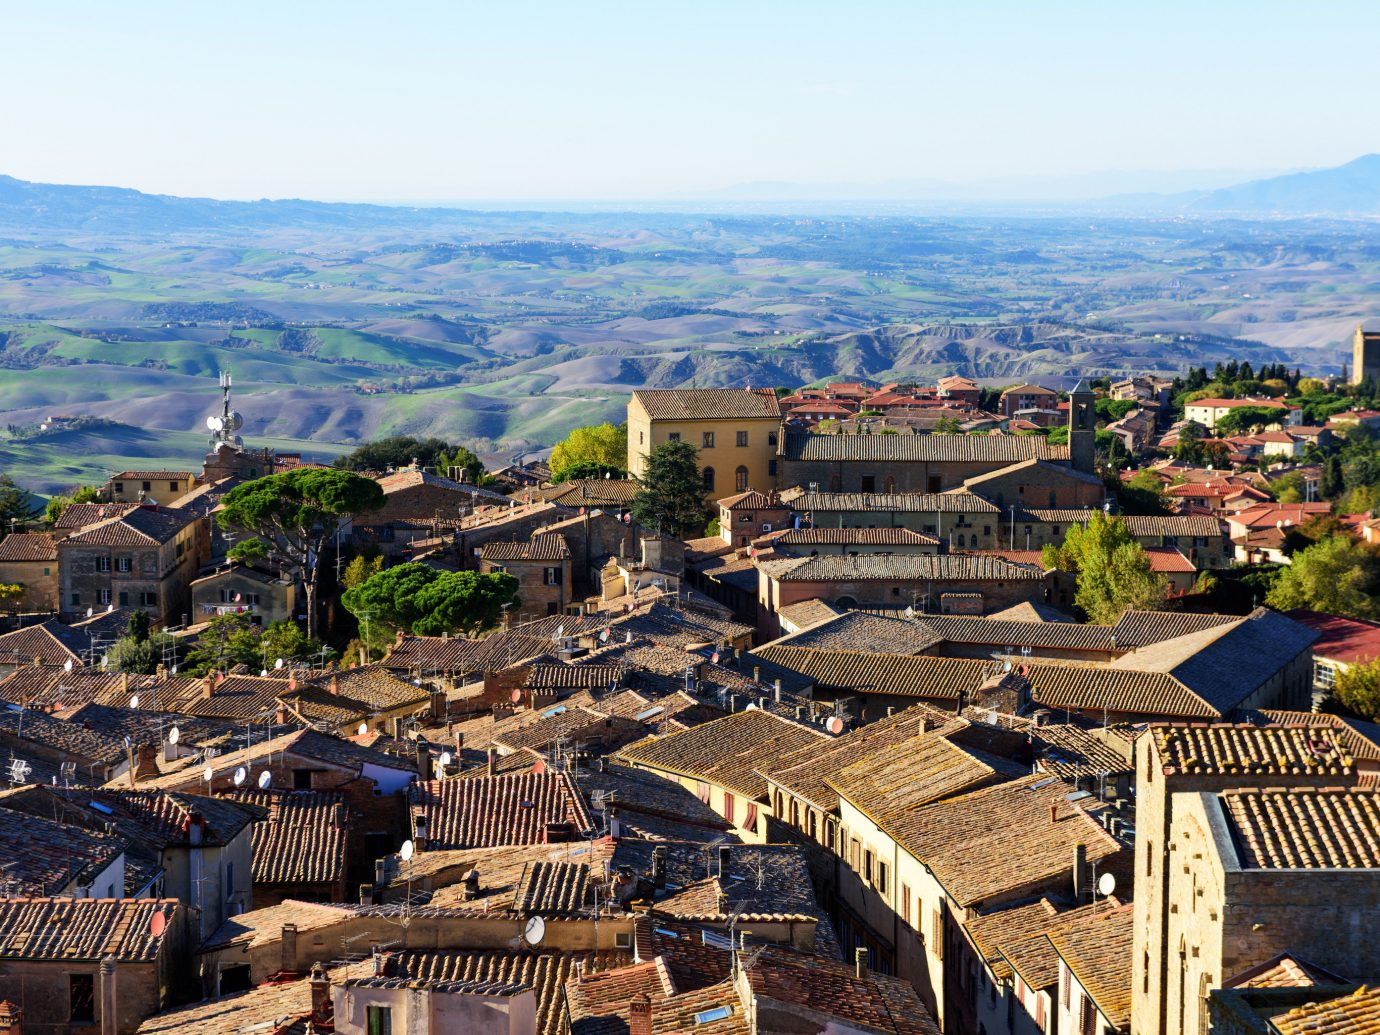 Italy Trip Ideas City mountain village sky urban area Town Village bird's eye view mountain historic site residential area tree suburb aerial photography ancient history tourism cityscape roof hill landscape plant